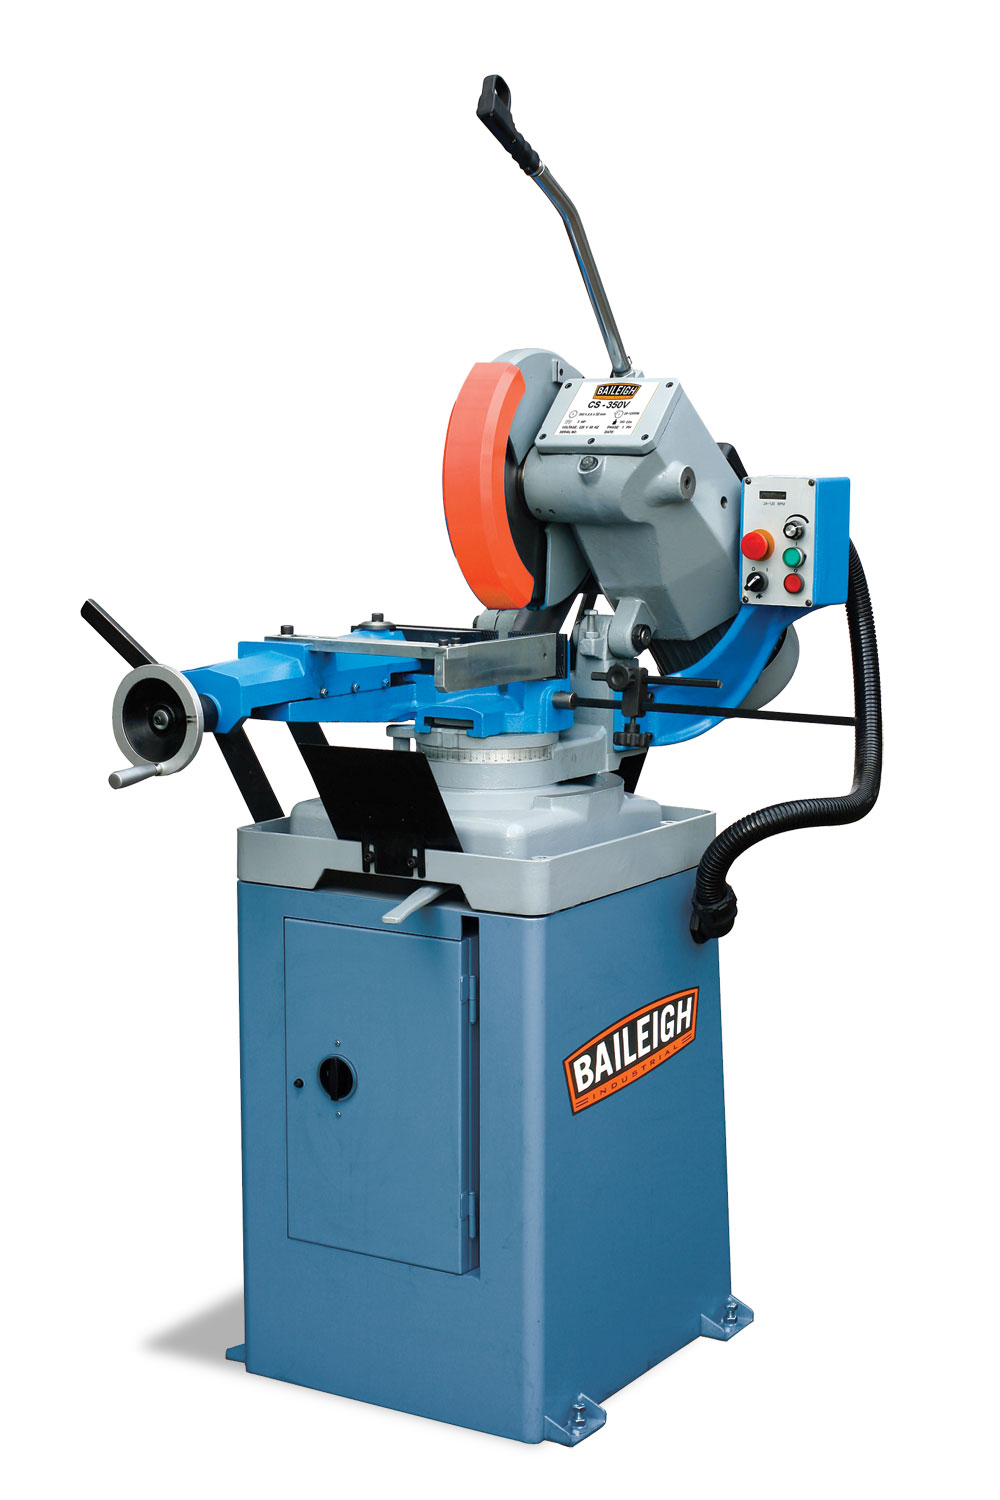 Baileigh Cs 350eu Circular Cold Saw